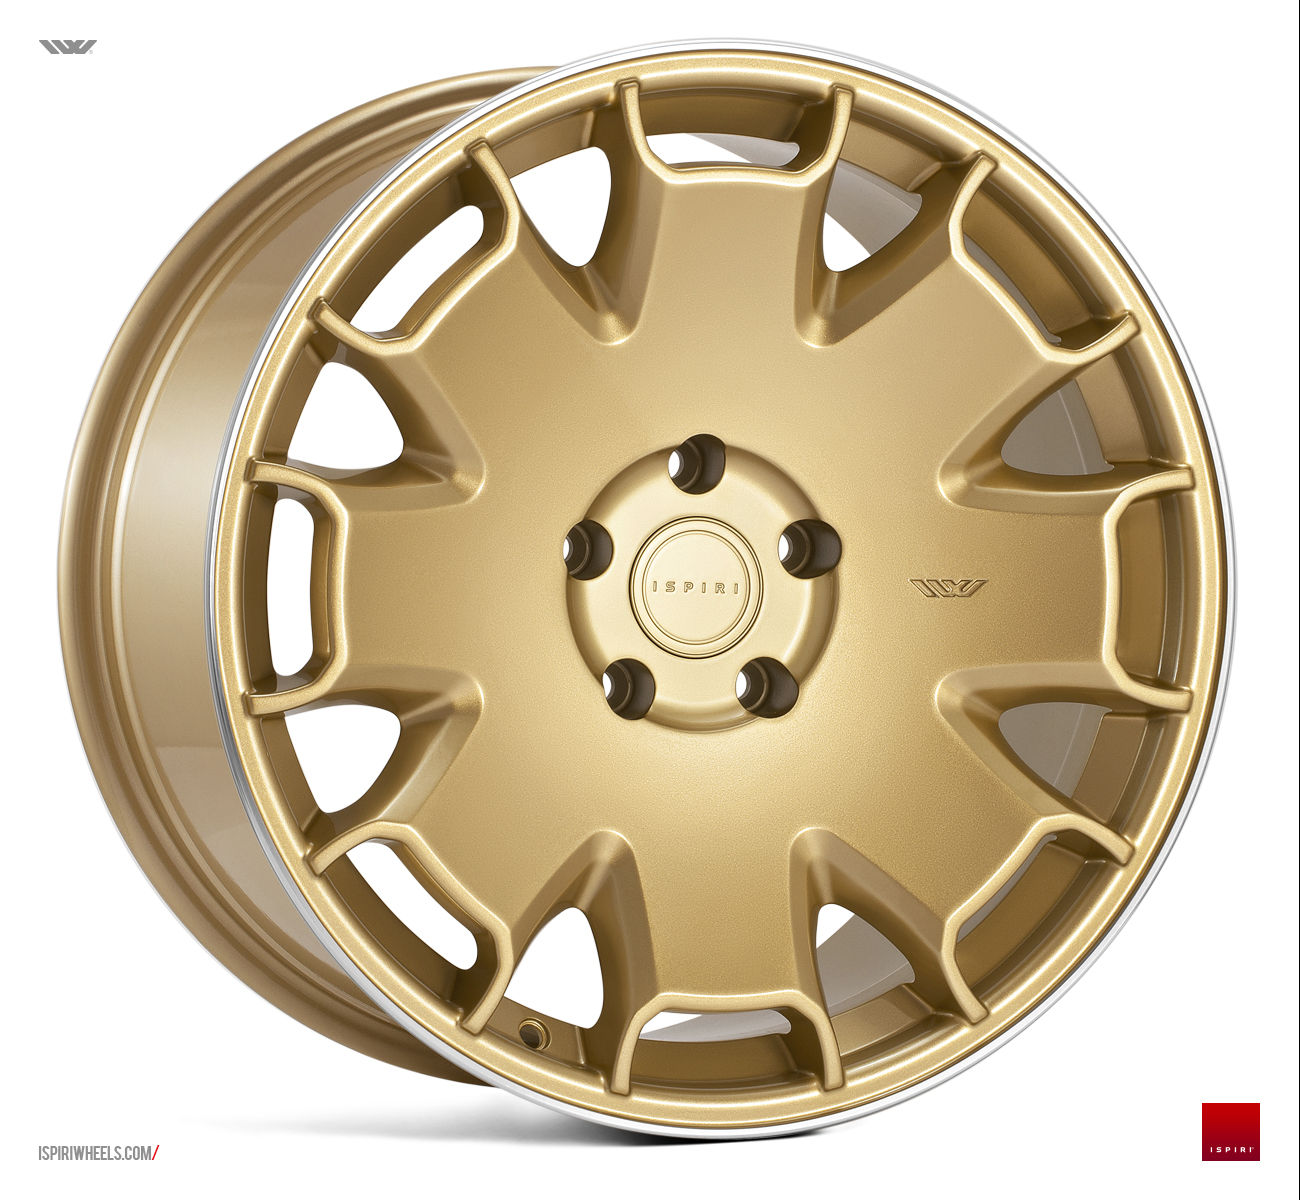 "NEW 19"" ISPIRI CSR2 ALLOY WHEELS IN VINTAGE GOLD WITH POLISHED LIP et32 or et42/42"